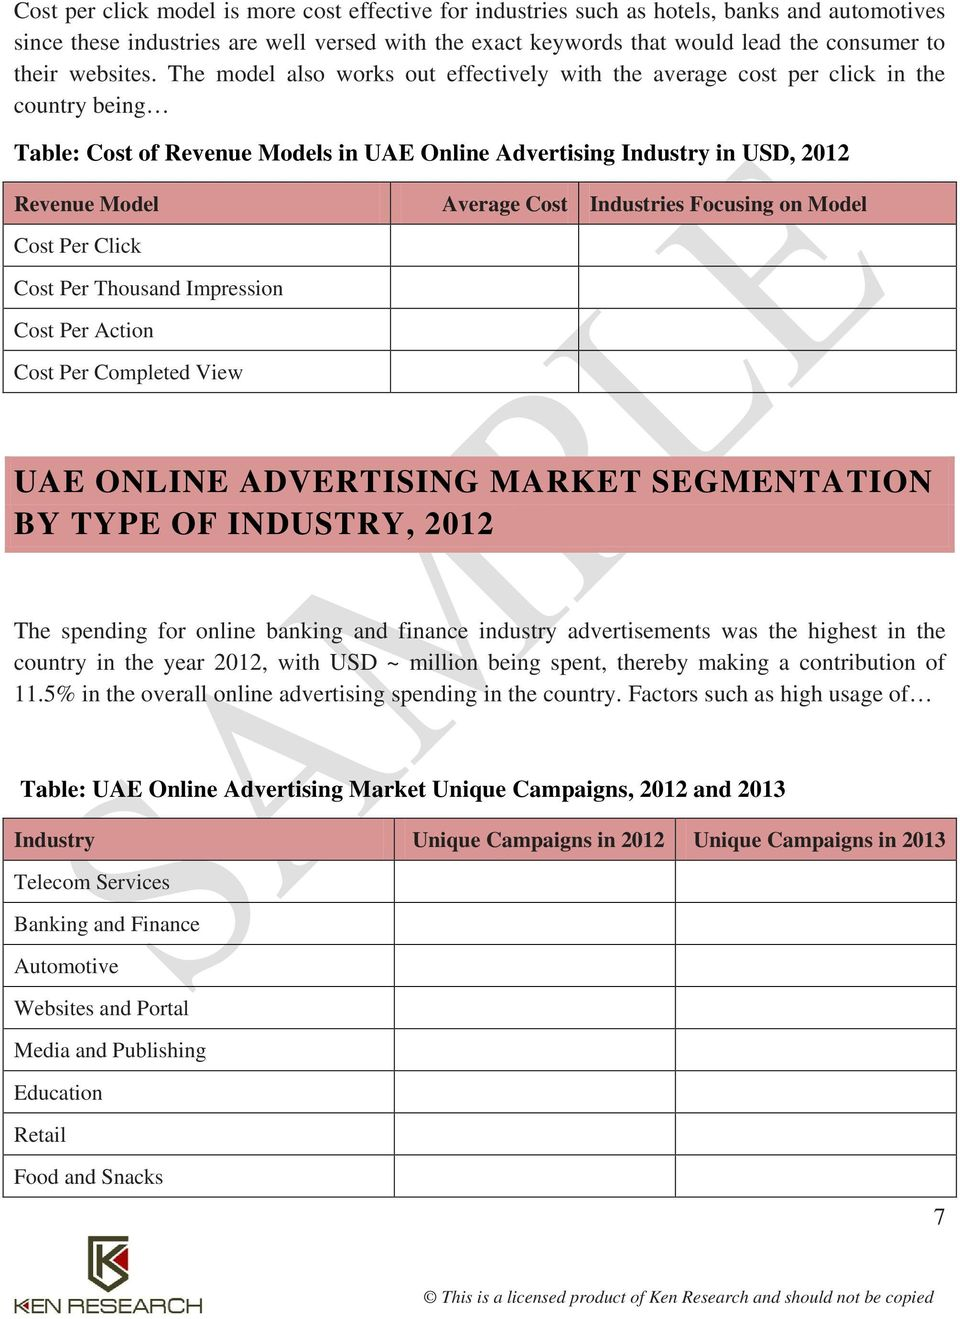 The model also works out effectively with the average cost per click in the country being Table: Cost of Revenue Models in UAE Online Advertising Industry in USD, 2012 Revenue Model Average Cost